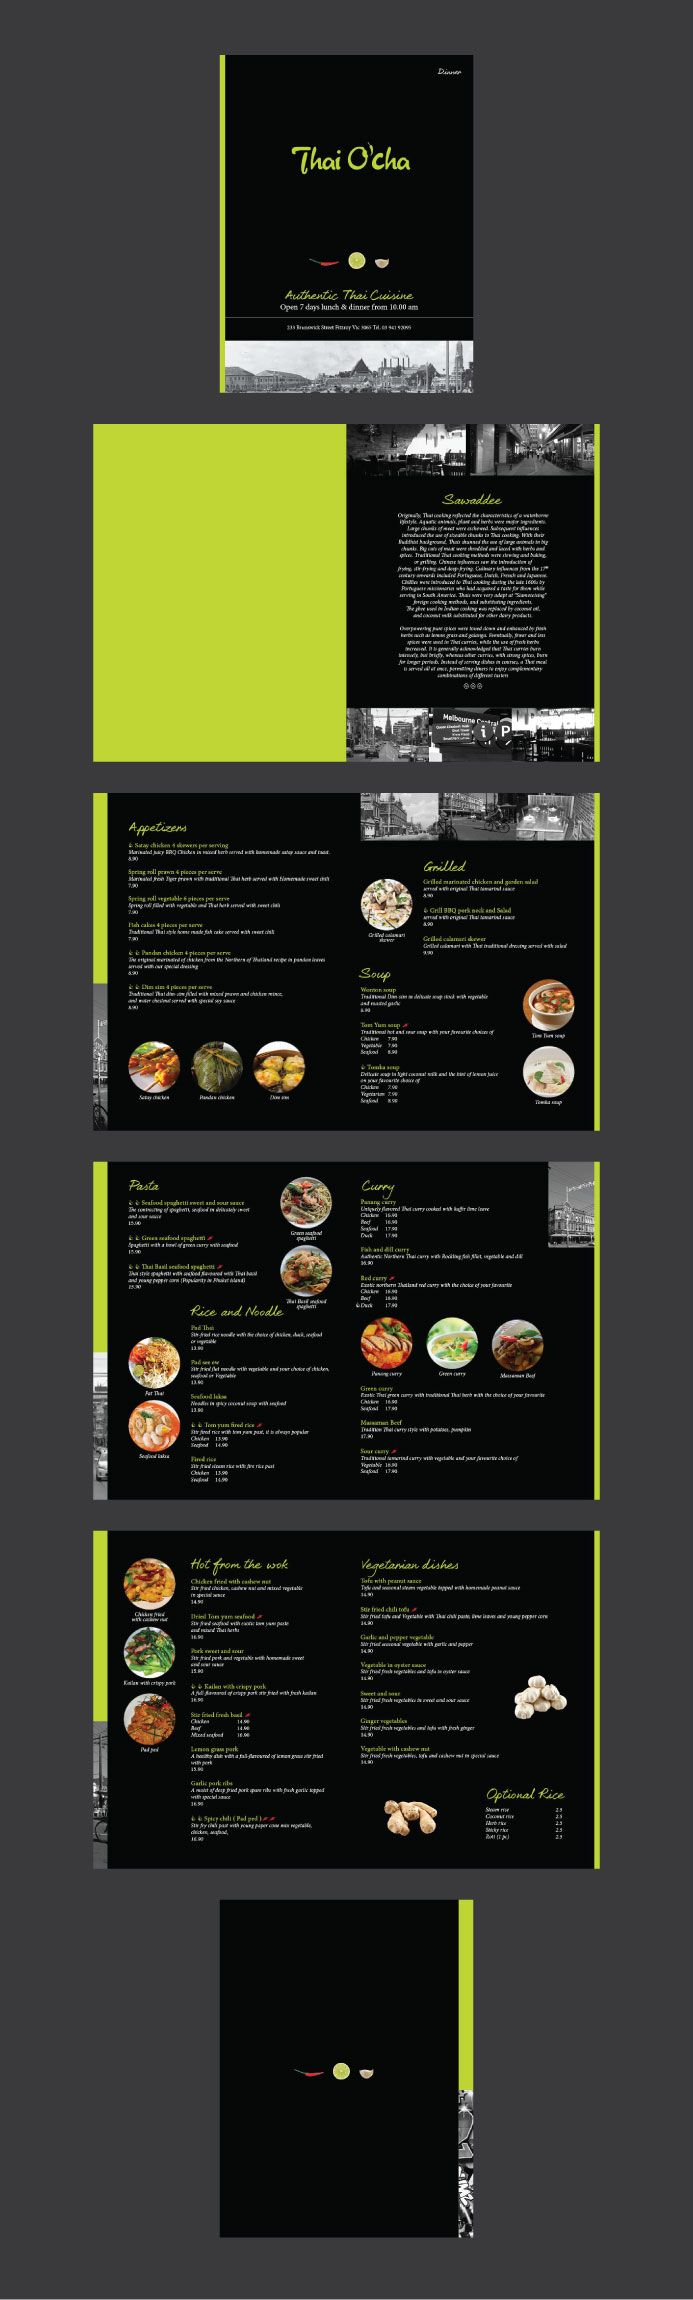 Menu for Thai O' Sha Restaurant that is located in Melbourne, Australia